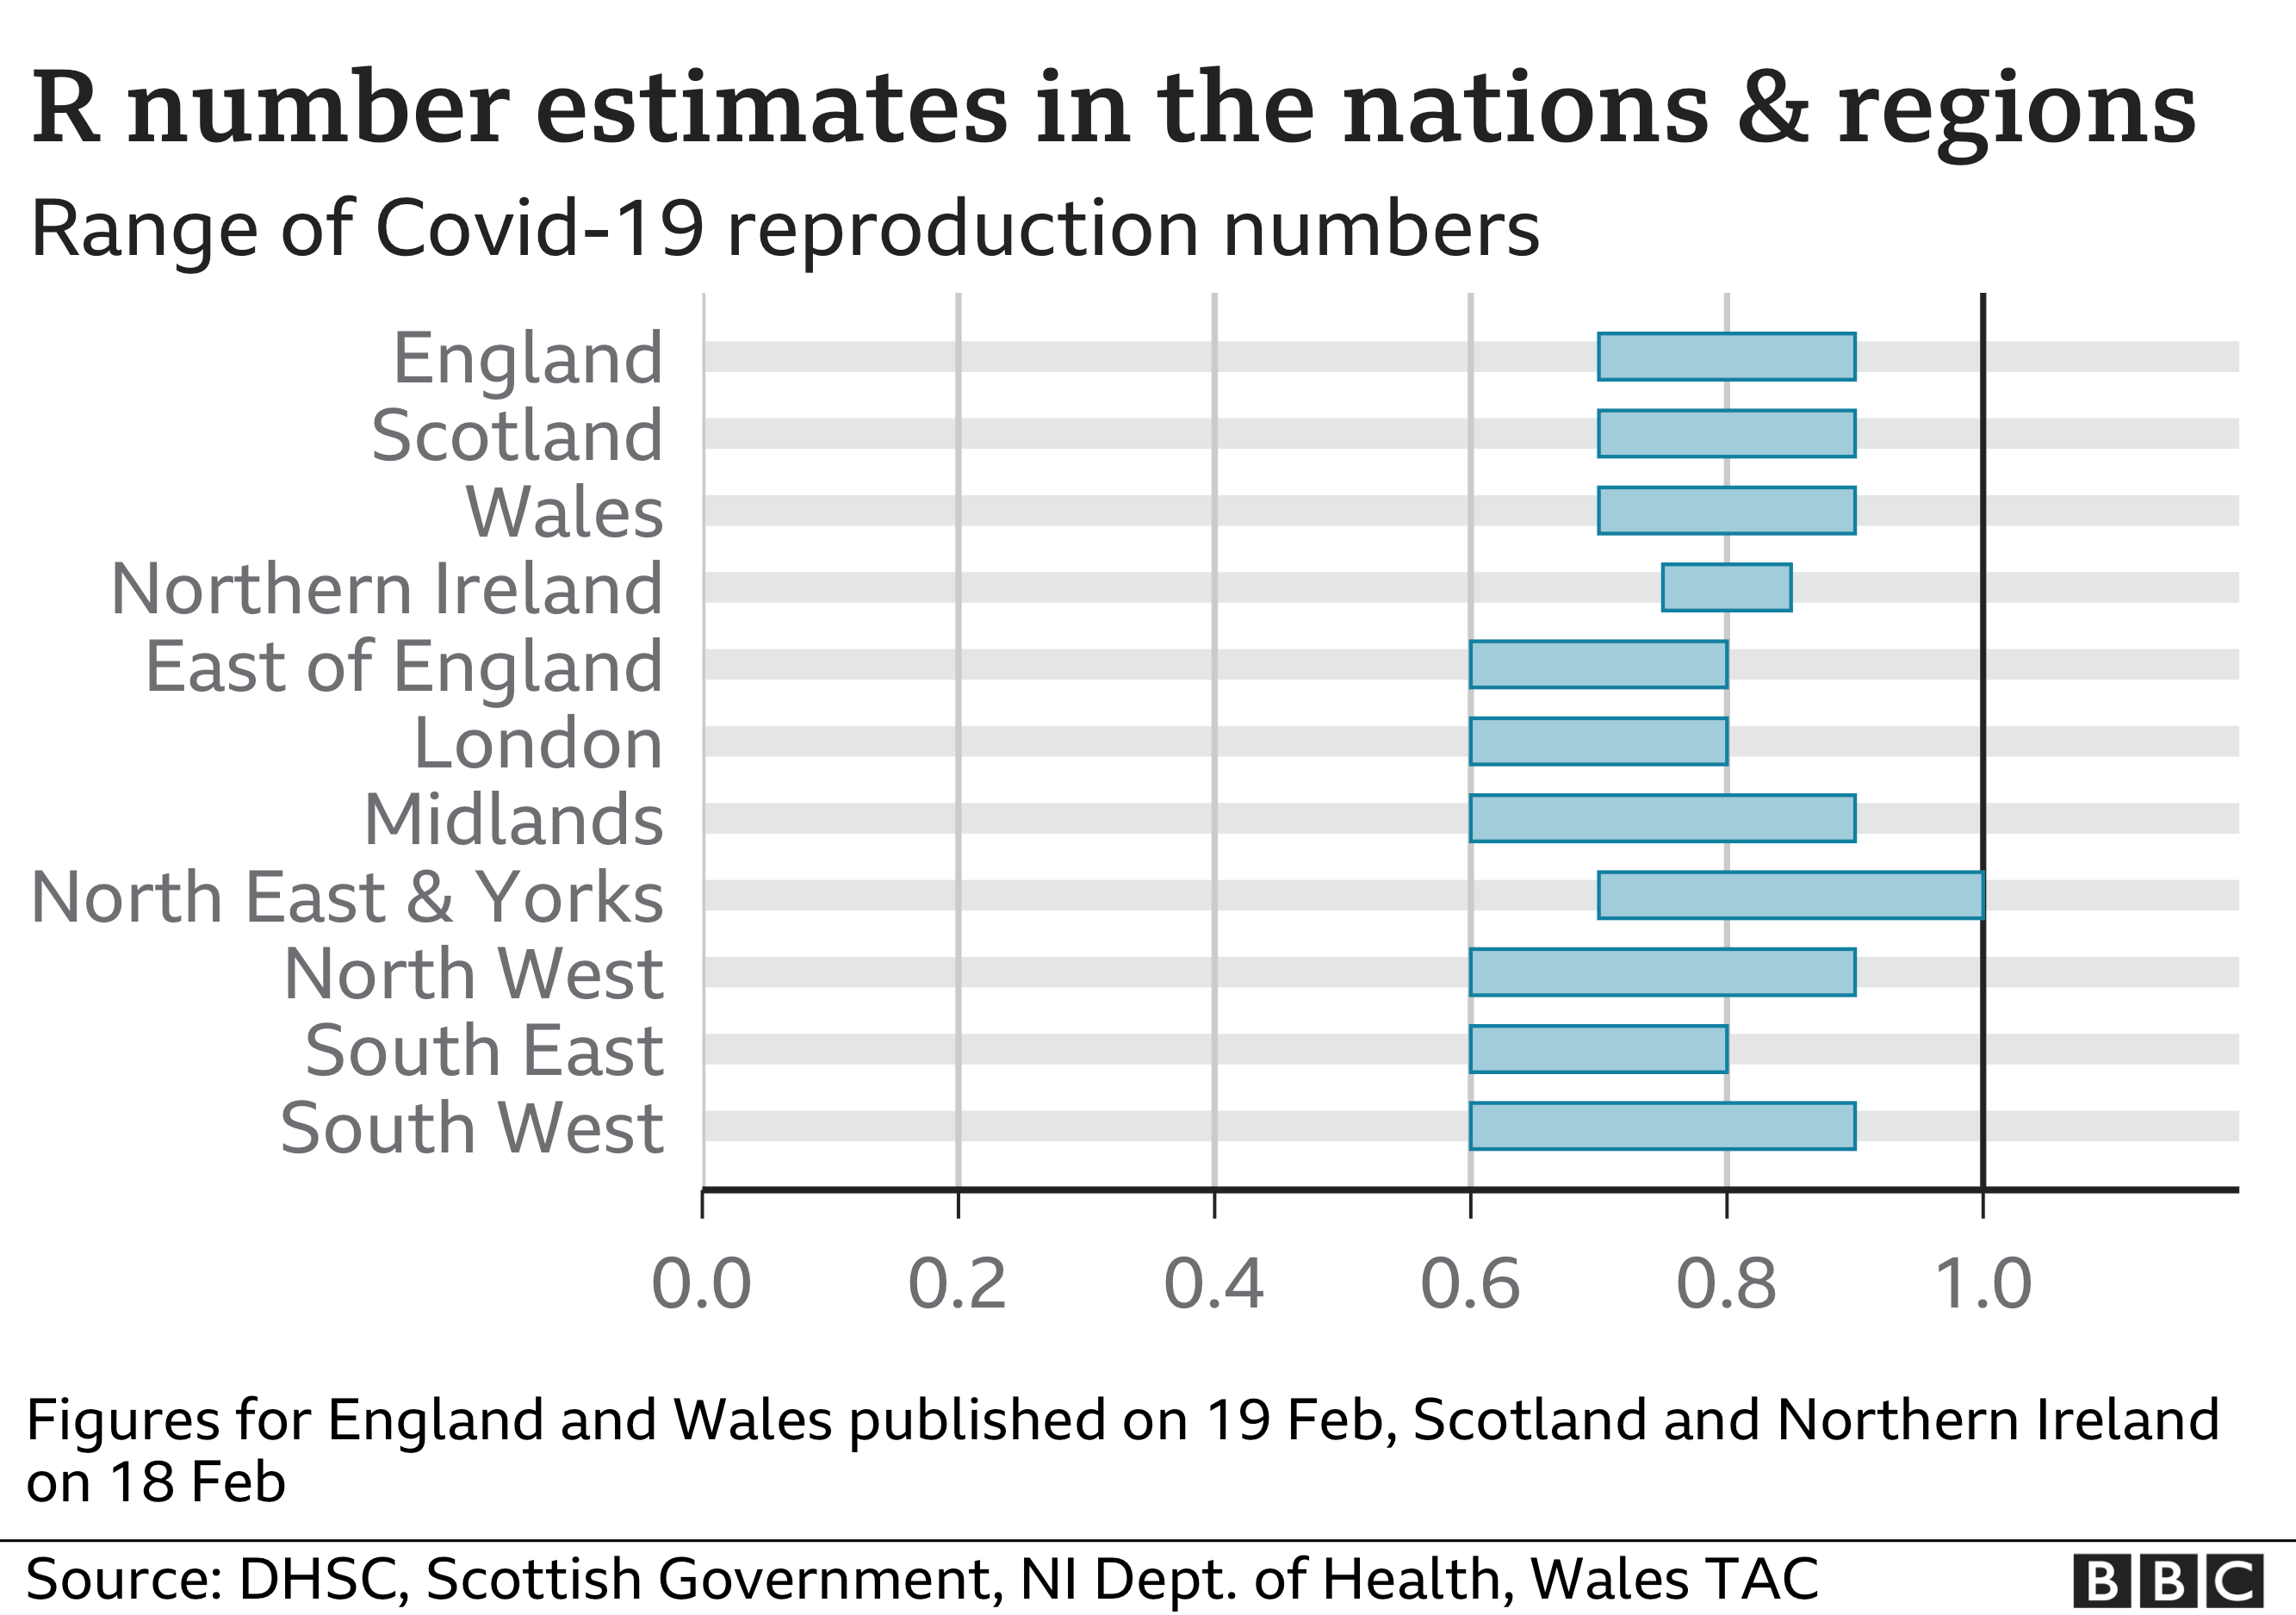 Chart showing the R number estimates for nations and regions